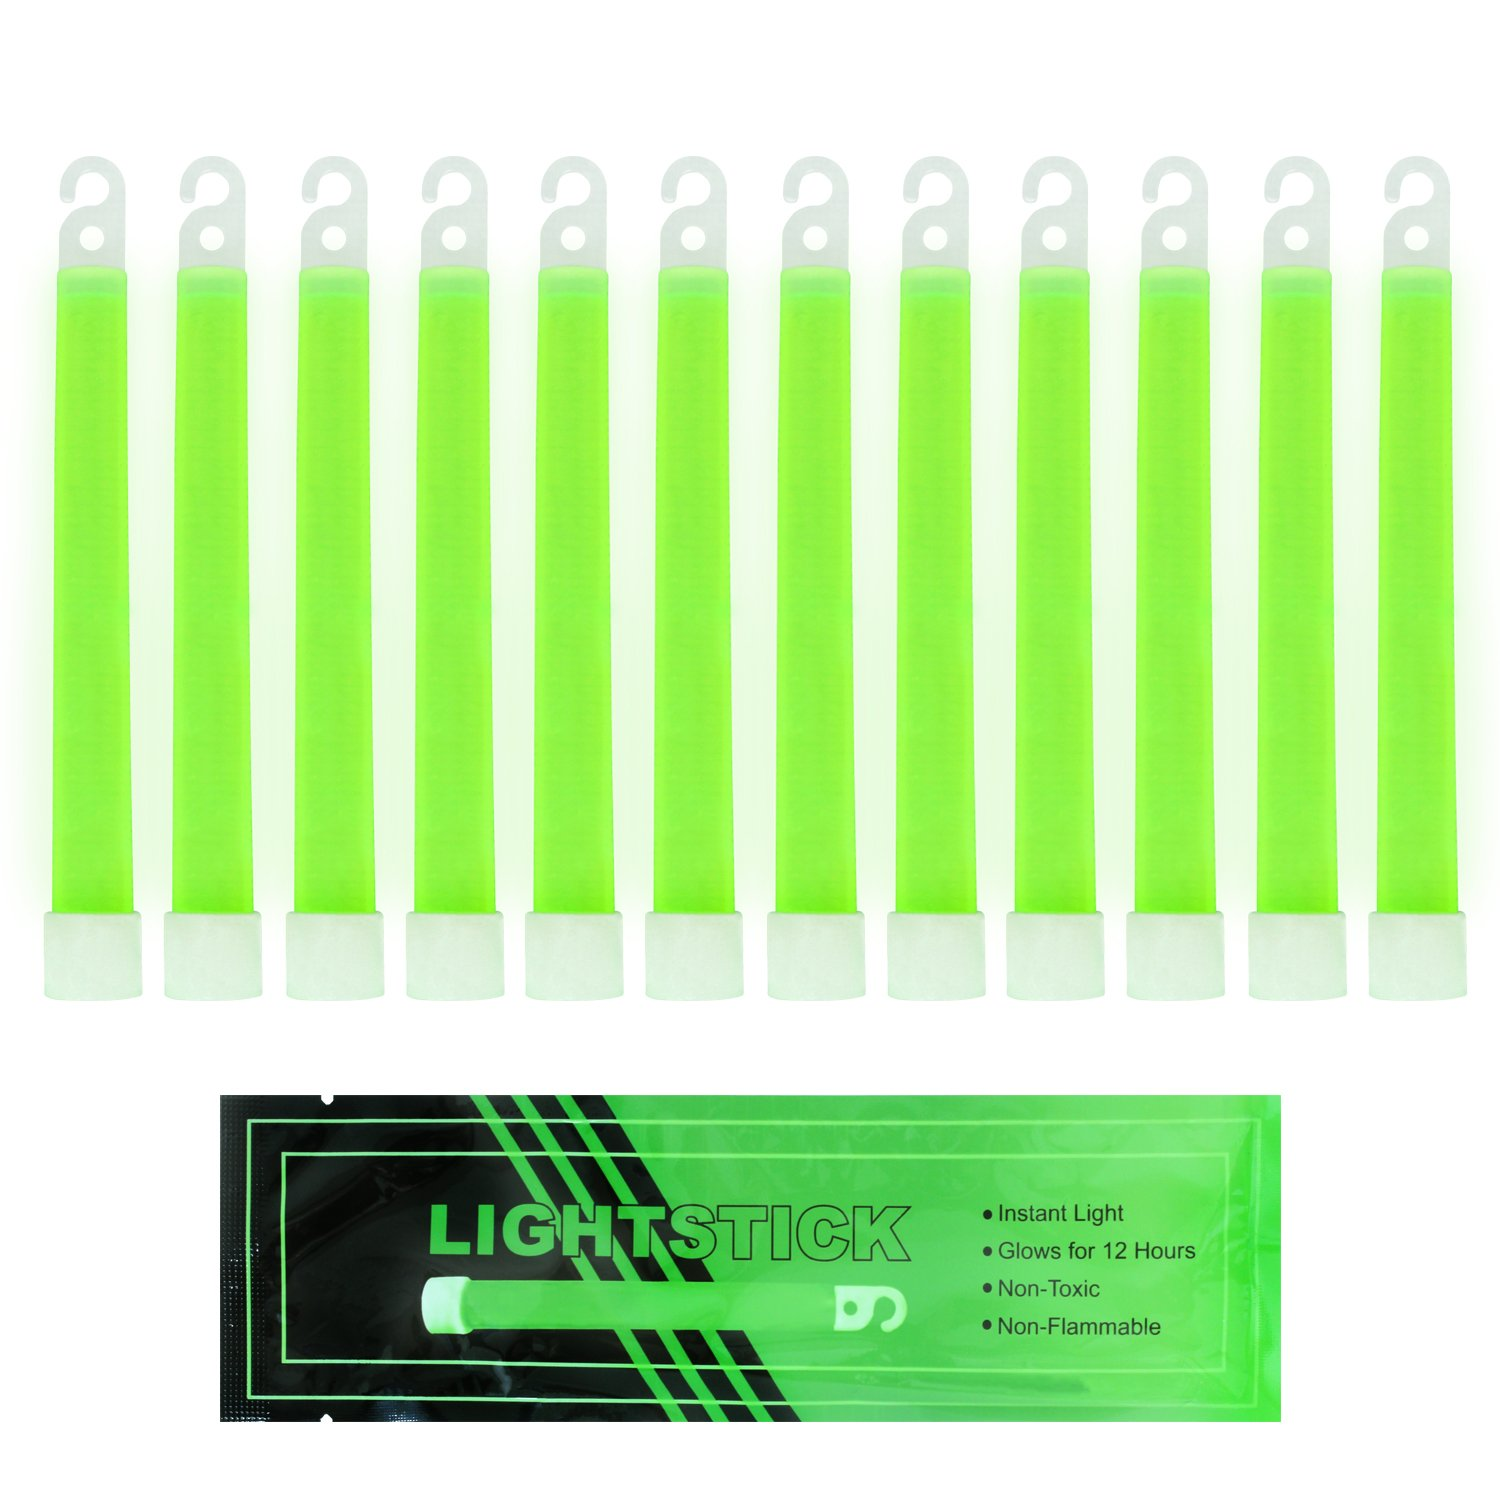 MediTac Green Glow Stick - Bright 6'' Snap Sticks With 12 Hour Duration (12 Pack) by MediTac